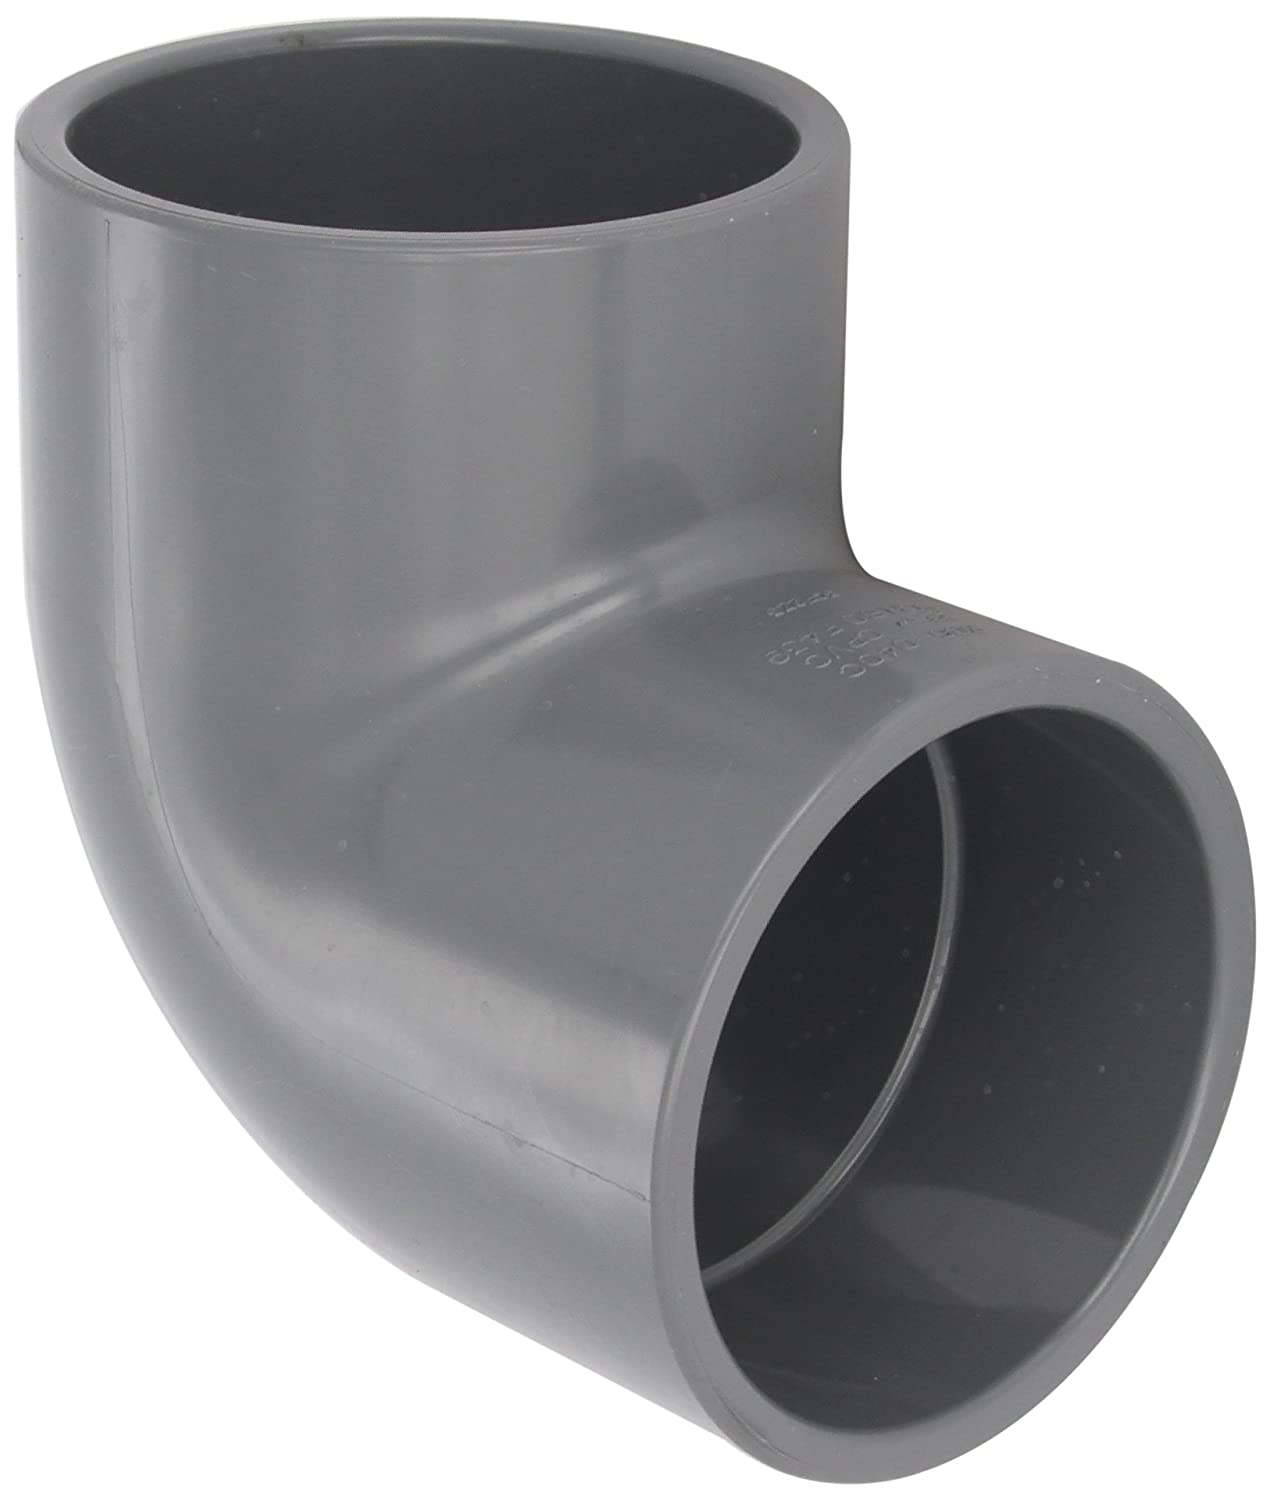 """New Sch 80 CPVC 1-¼"""" 90 Degree Elbow Socket Connect"""